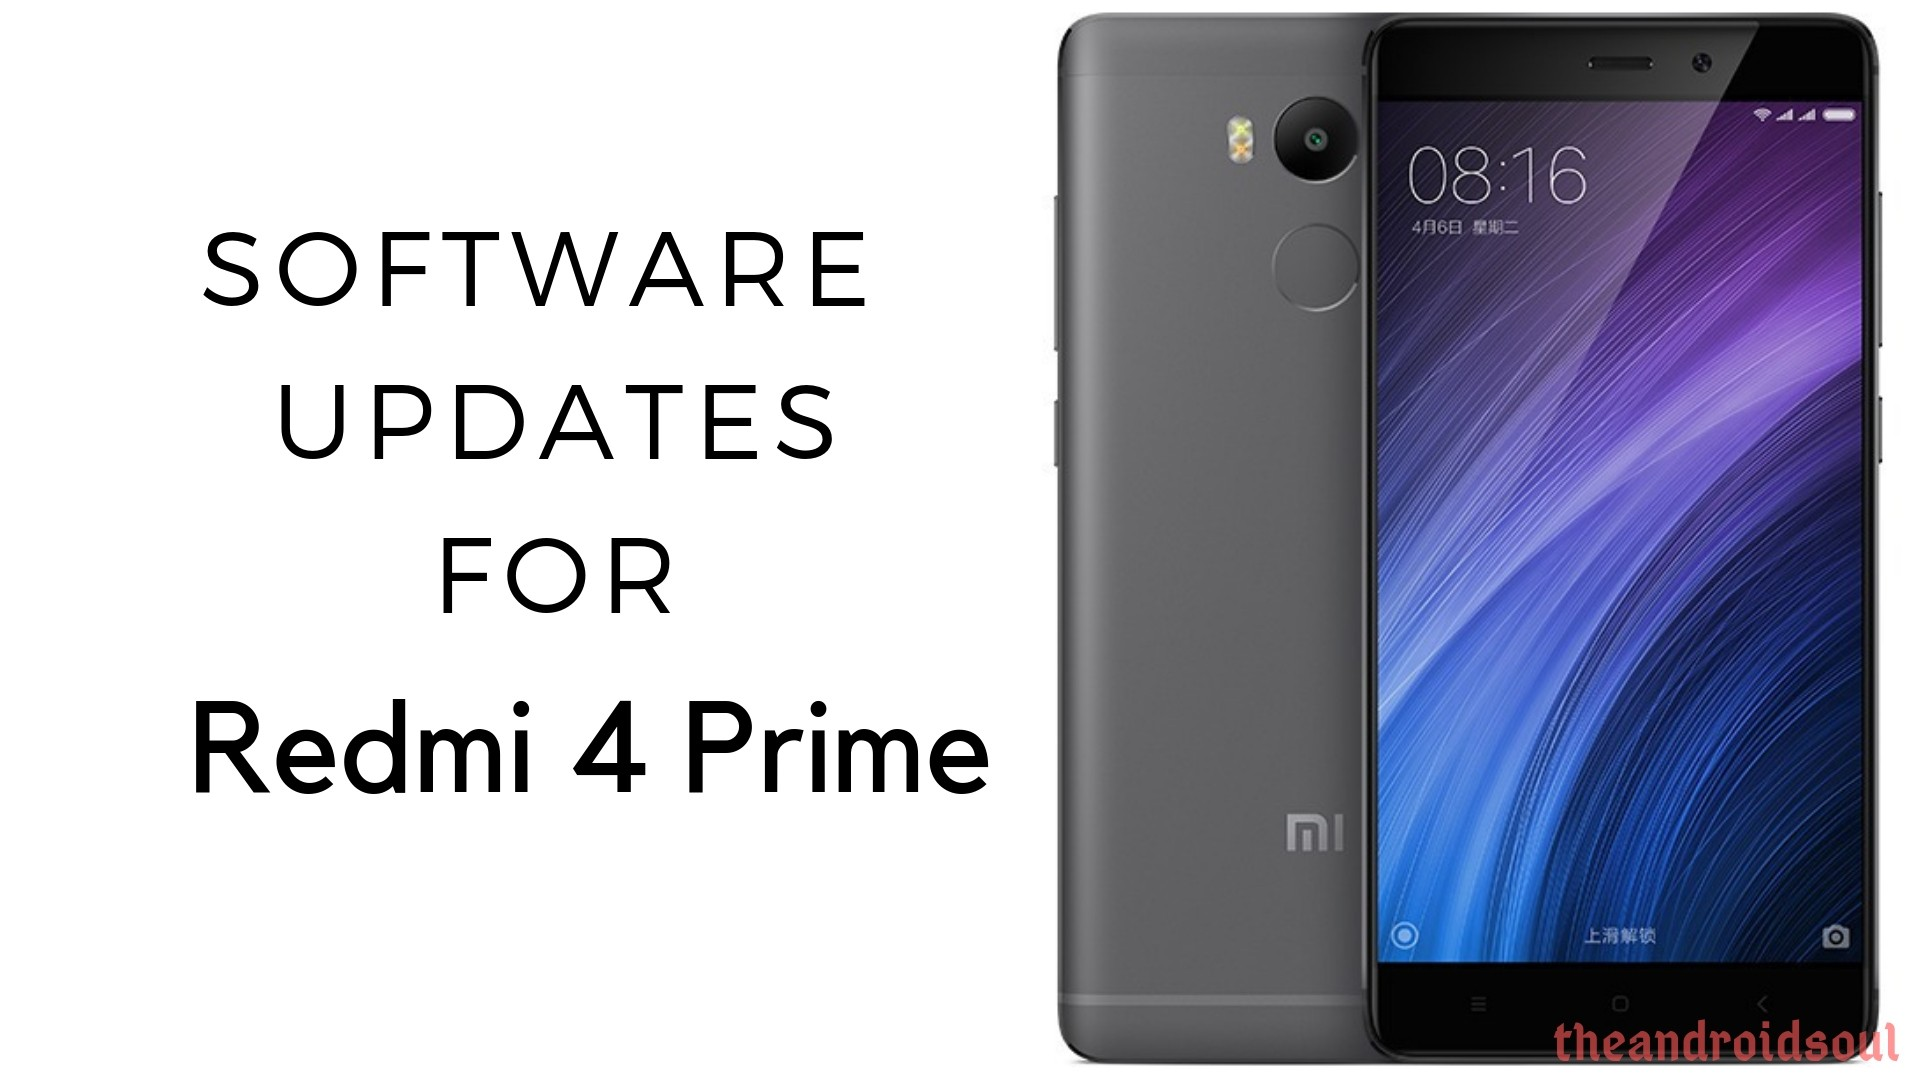 Xiaomi Redmi 4 Prime software updates